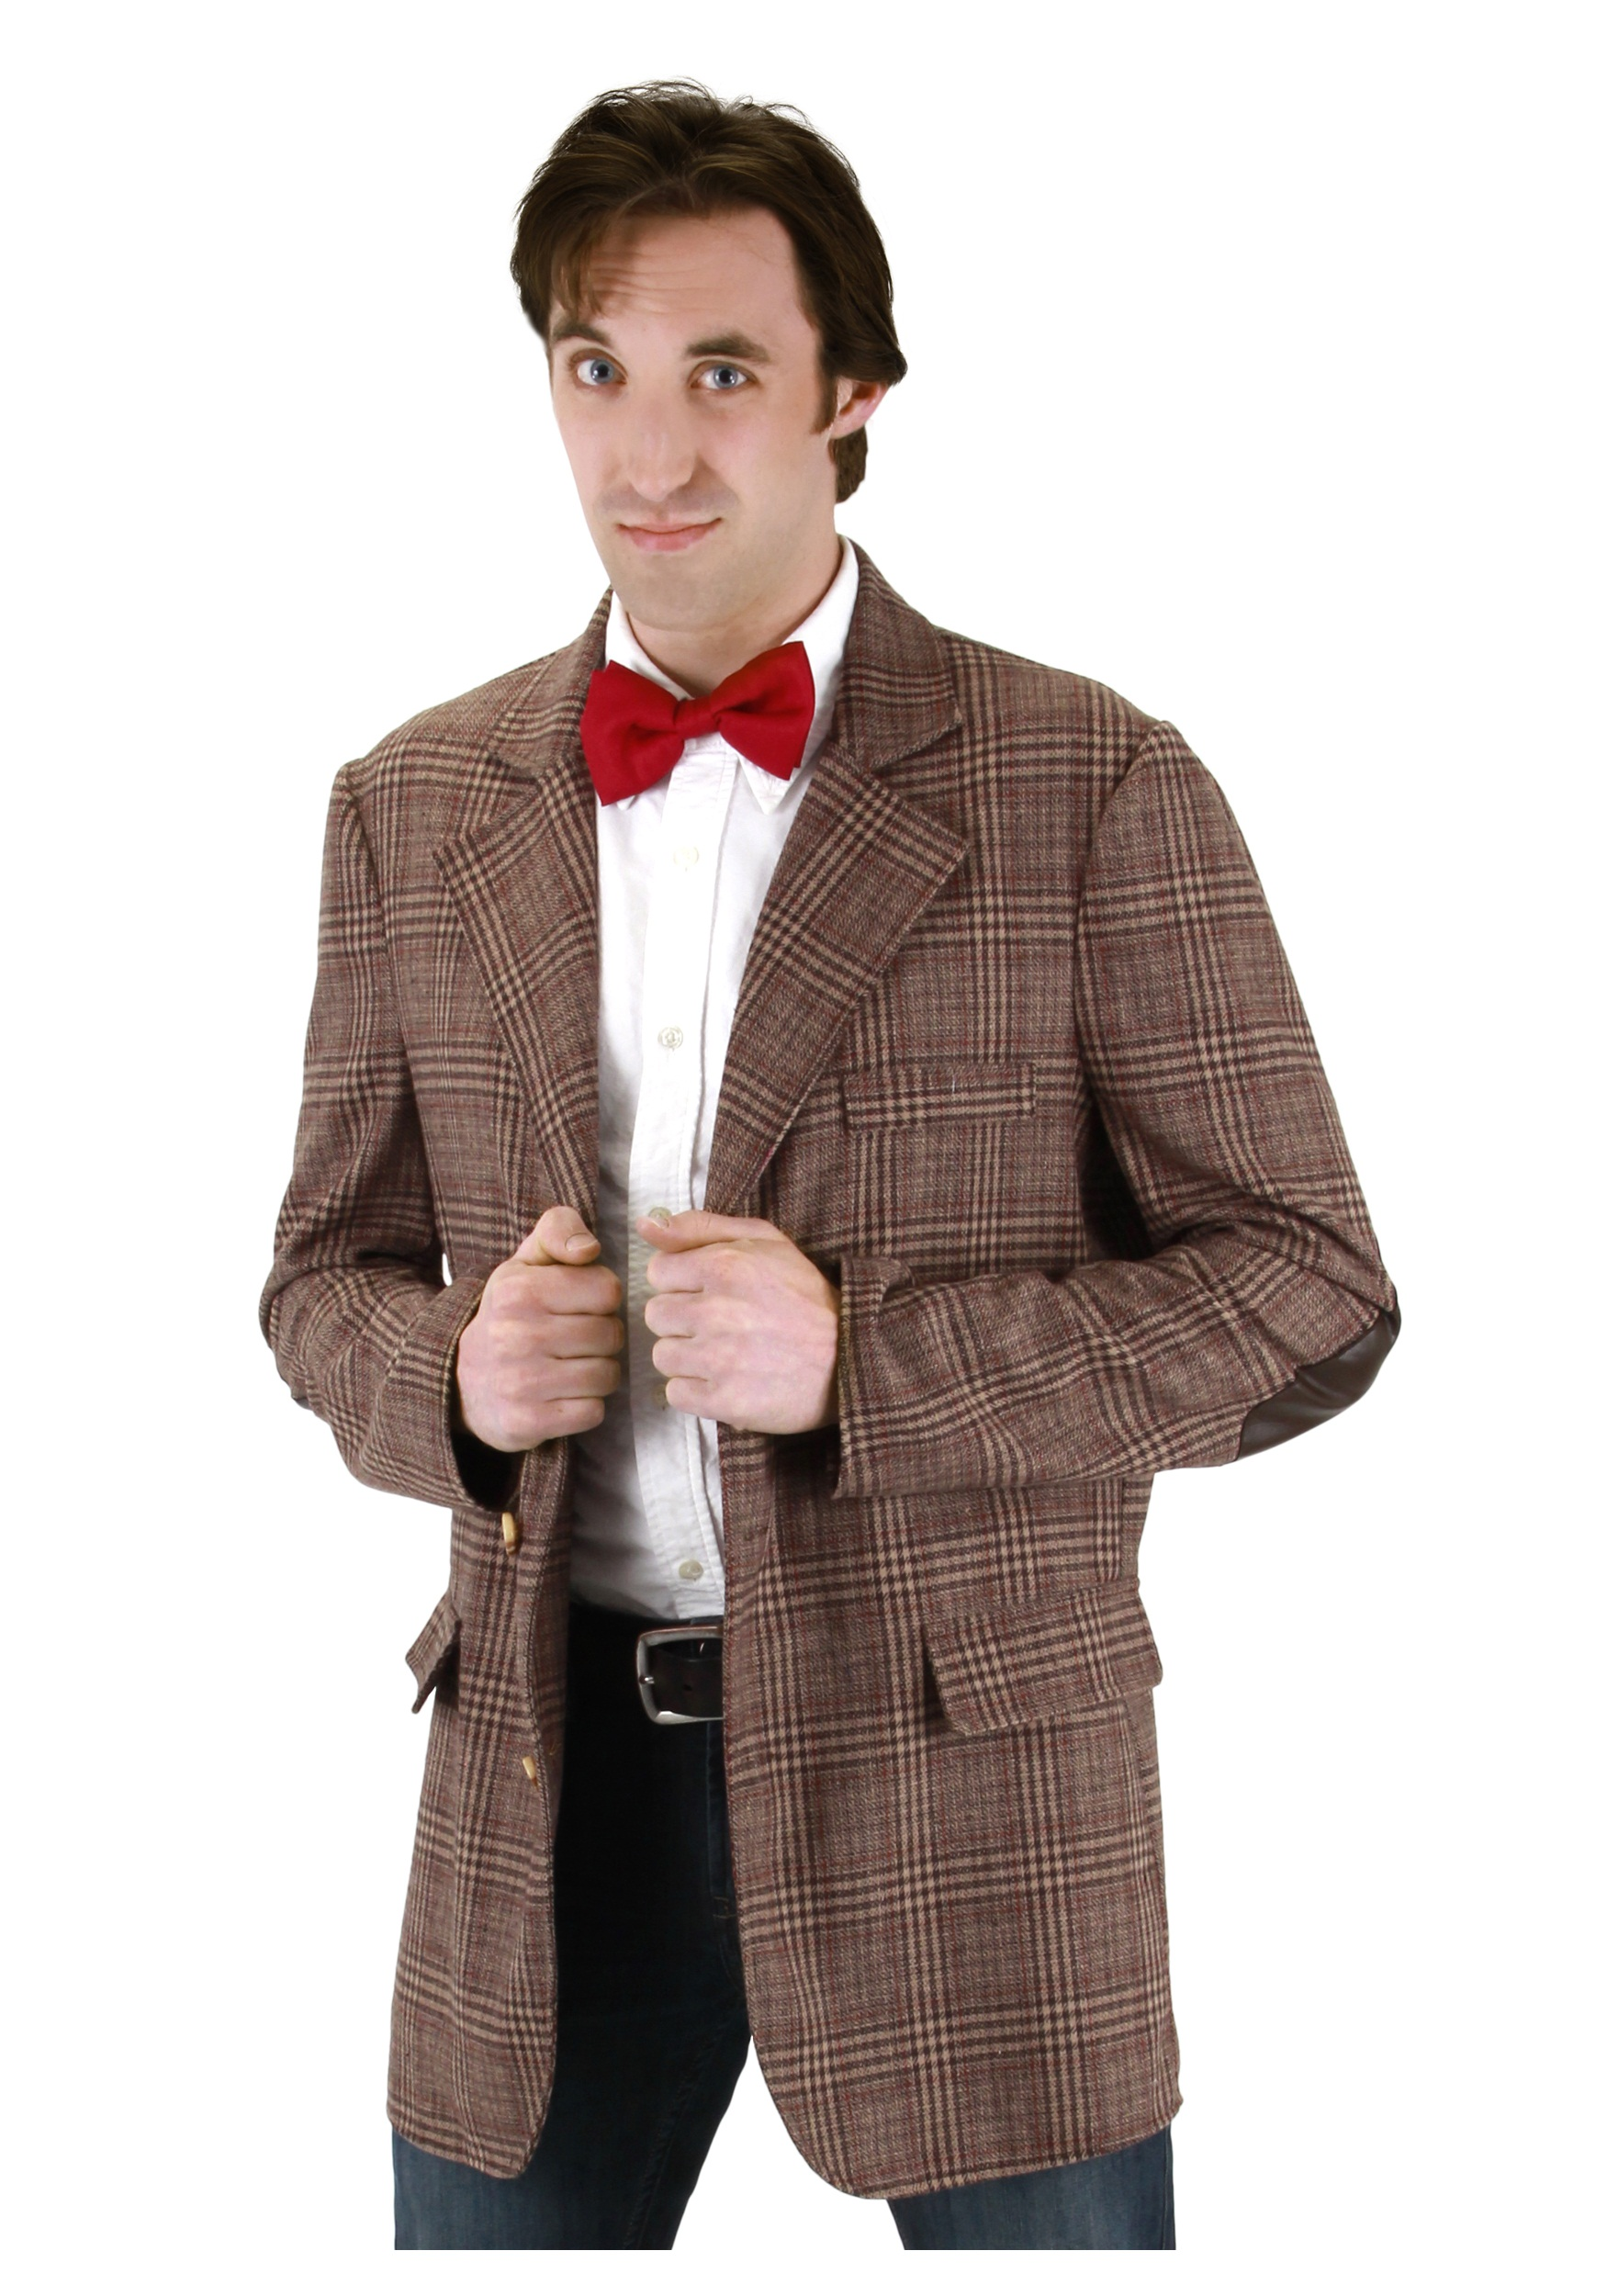 sc 1 st  Halloween Costumes & Doctor Who Mens 11th Doctor Jacket